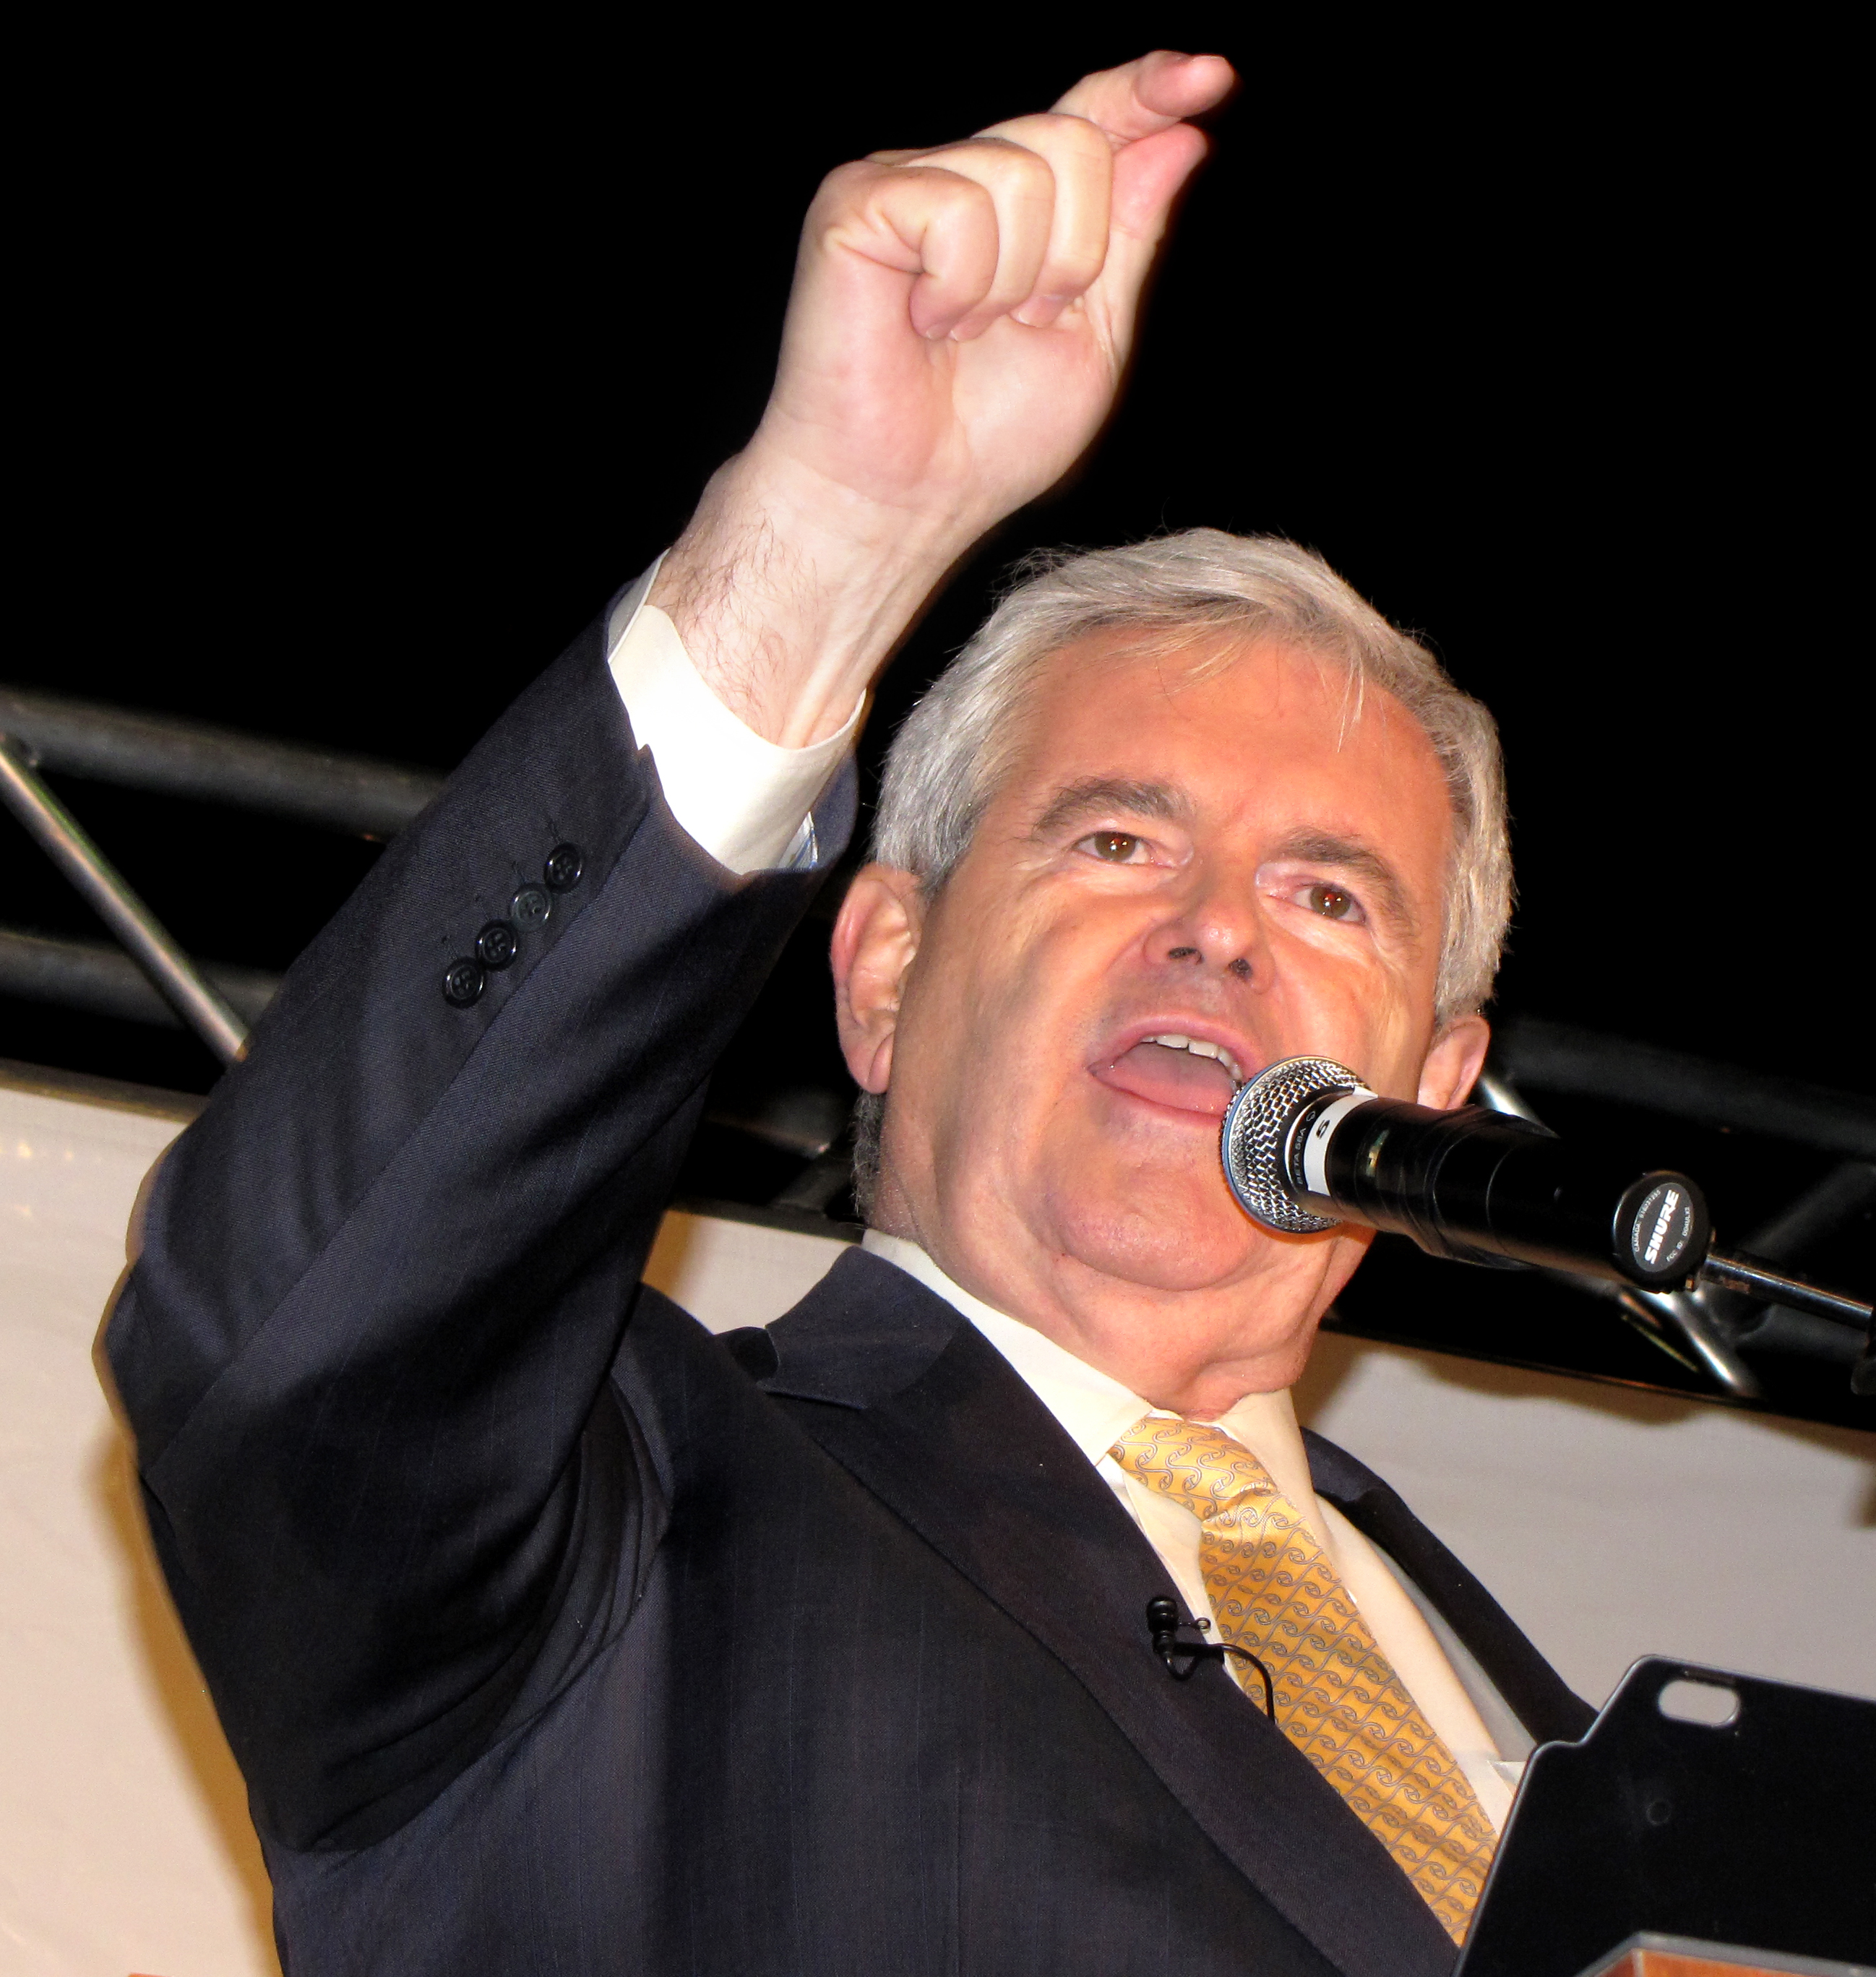 Gingrich Fumes About Fox News at Delaware Tea Party Meeting